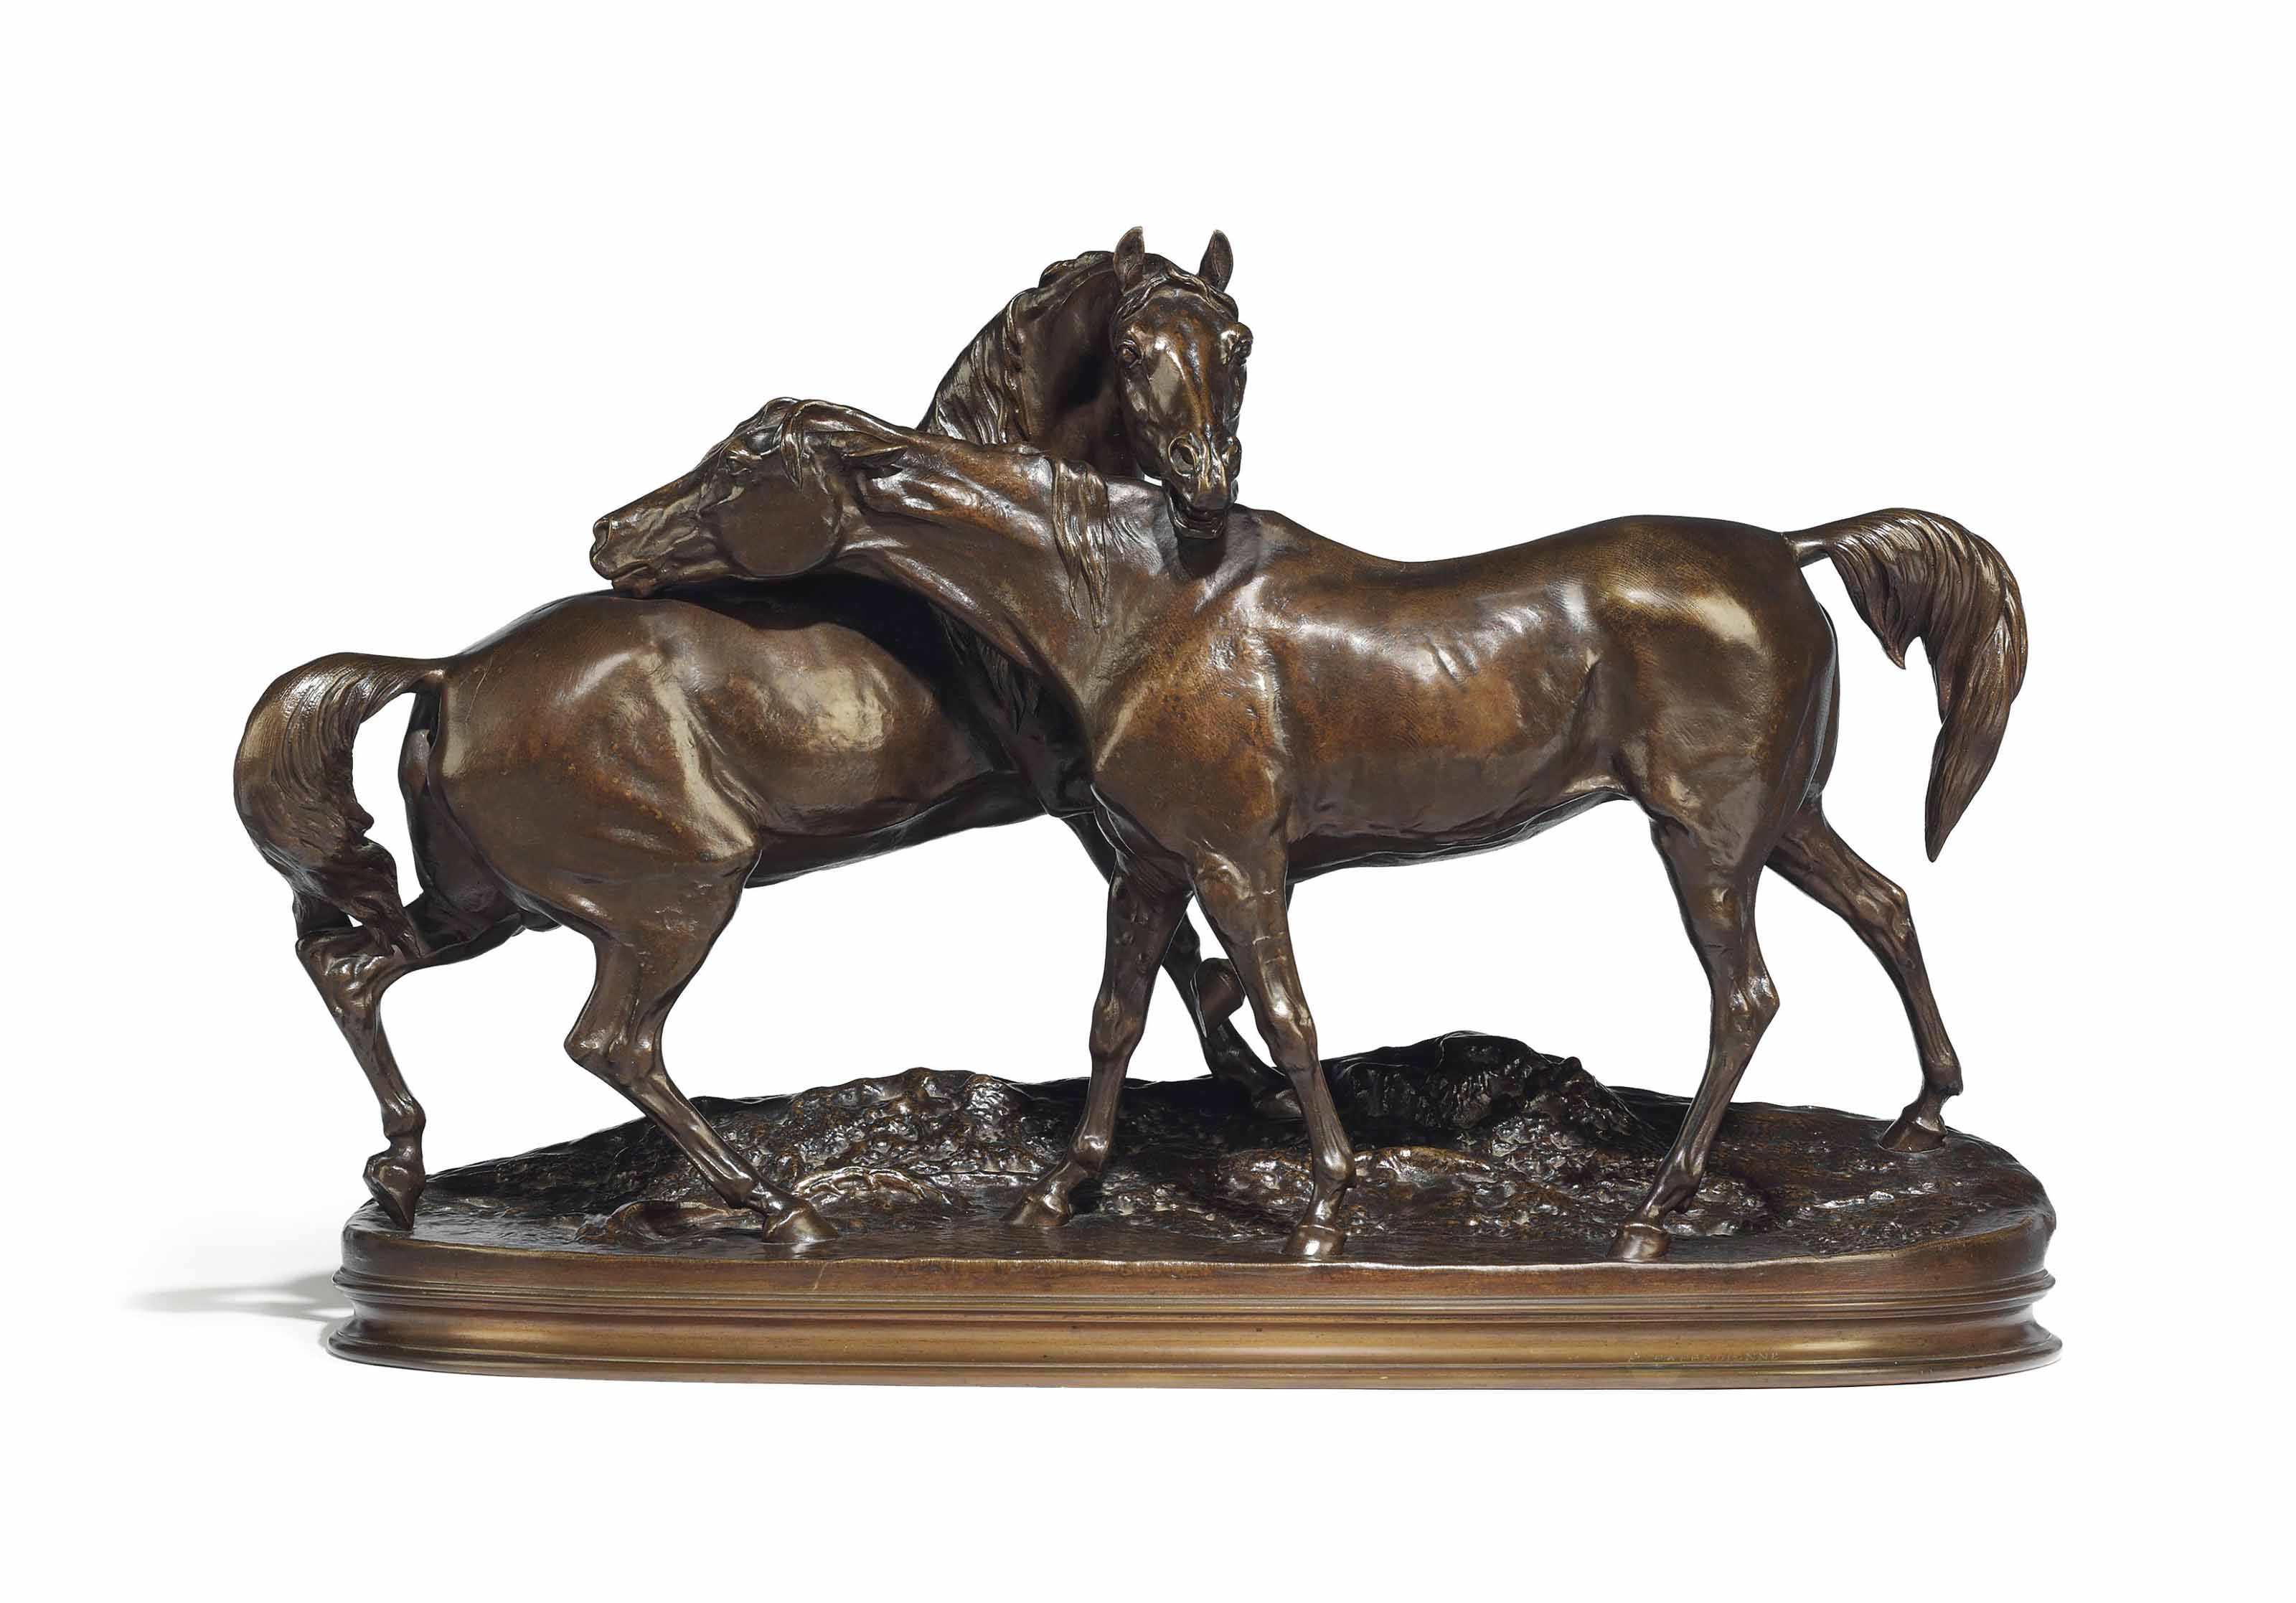 A FRENCH BRONZE EQUESTRIAN GROUP OF TWO HORSES, ENTITLED 'GROUP CHEVEAUX ARABES NO 1 (OU ACCOLADE NO 1)'